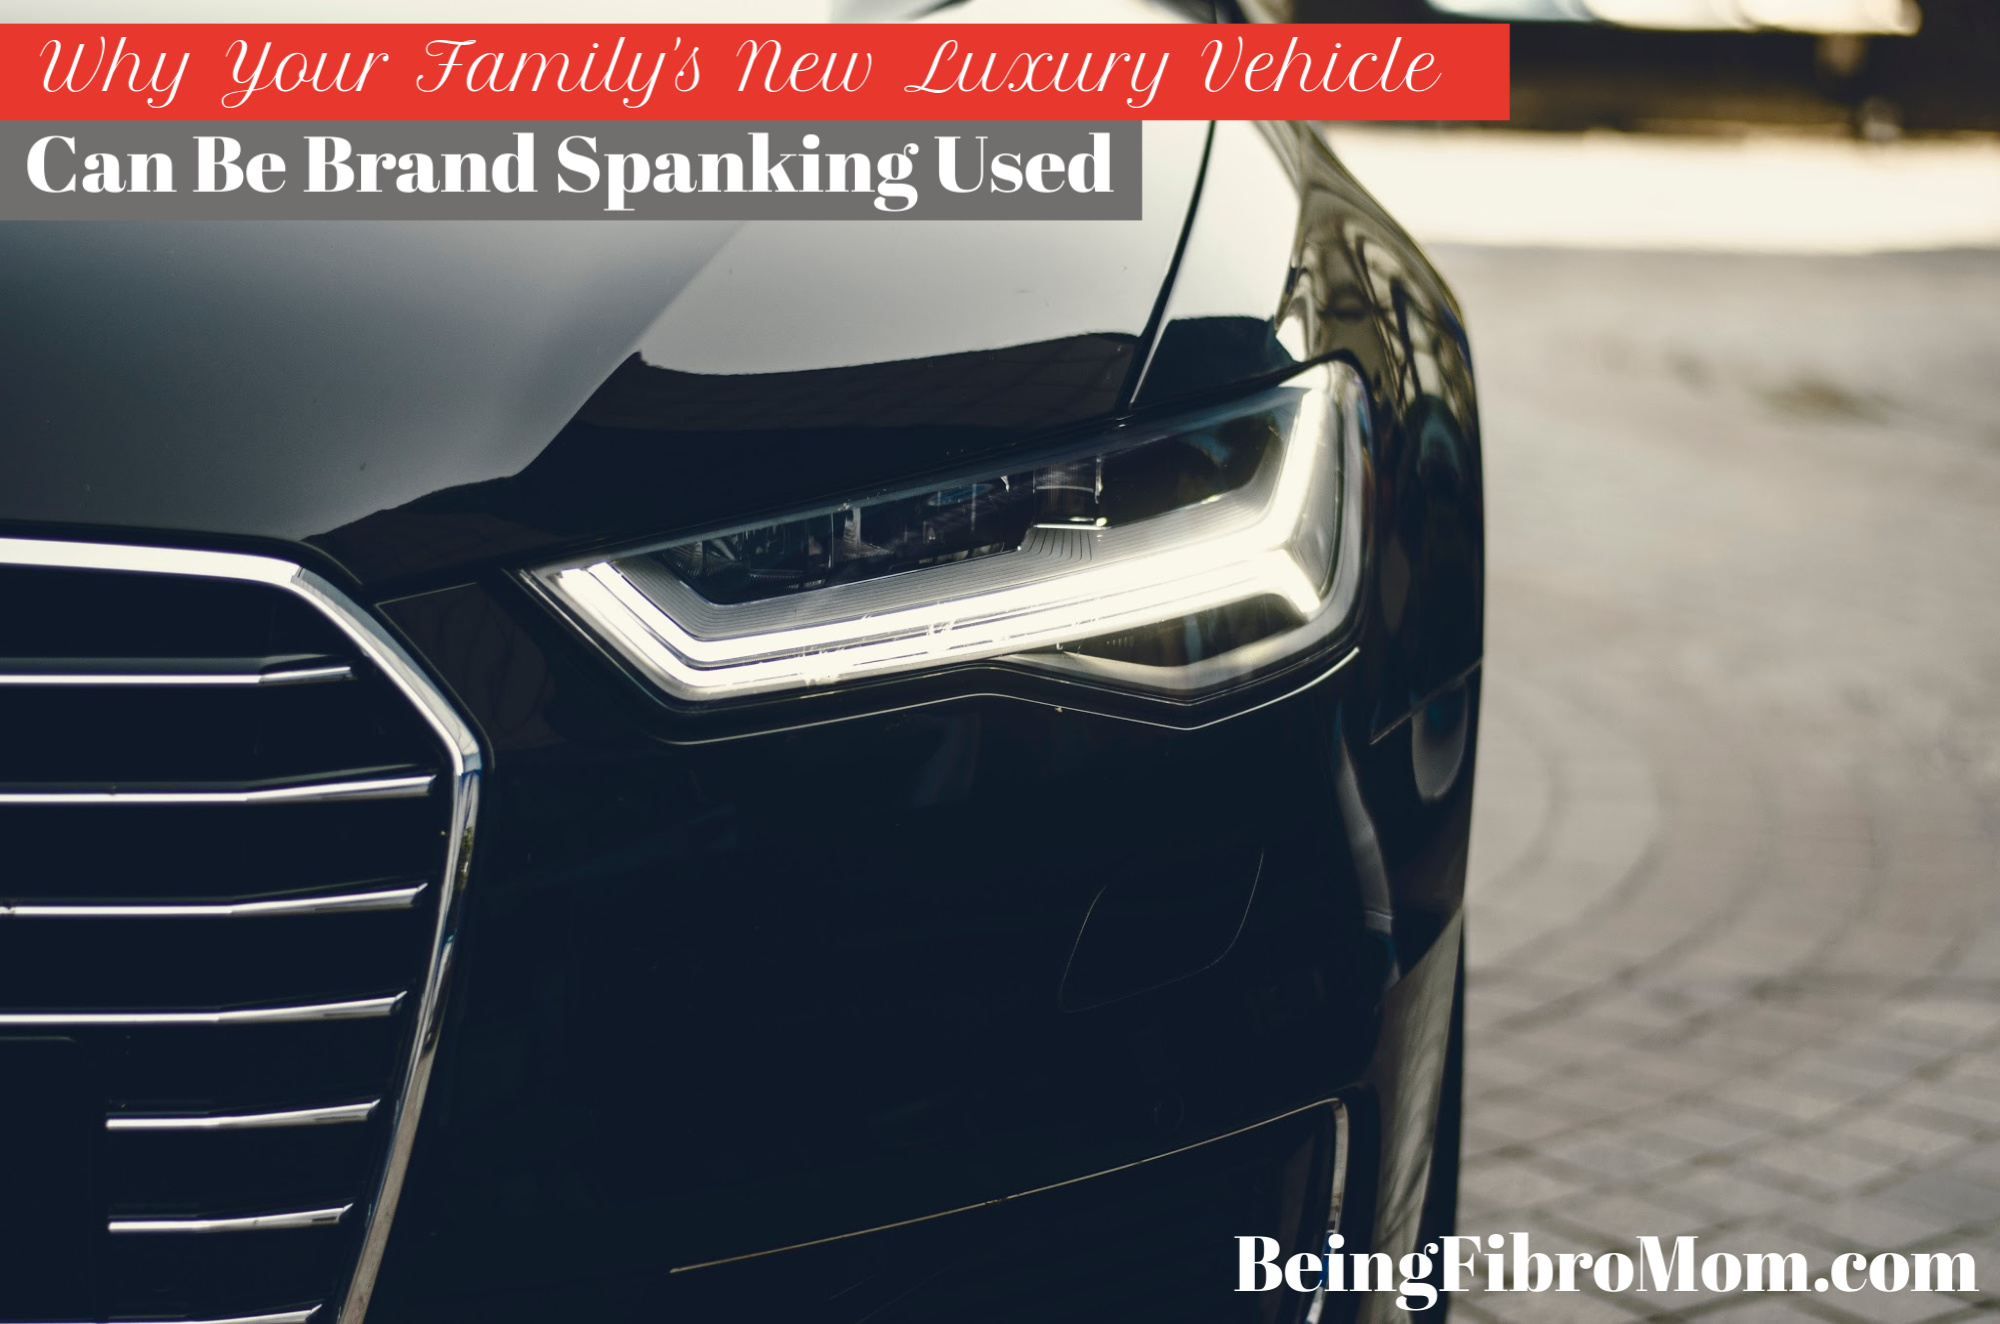 Why Your Family's New Luxury Vehicle Can Be Brand Spanking Used #fibrofamily #beingfibromom